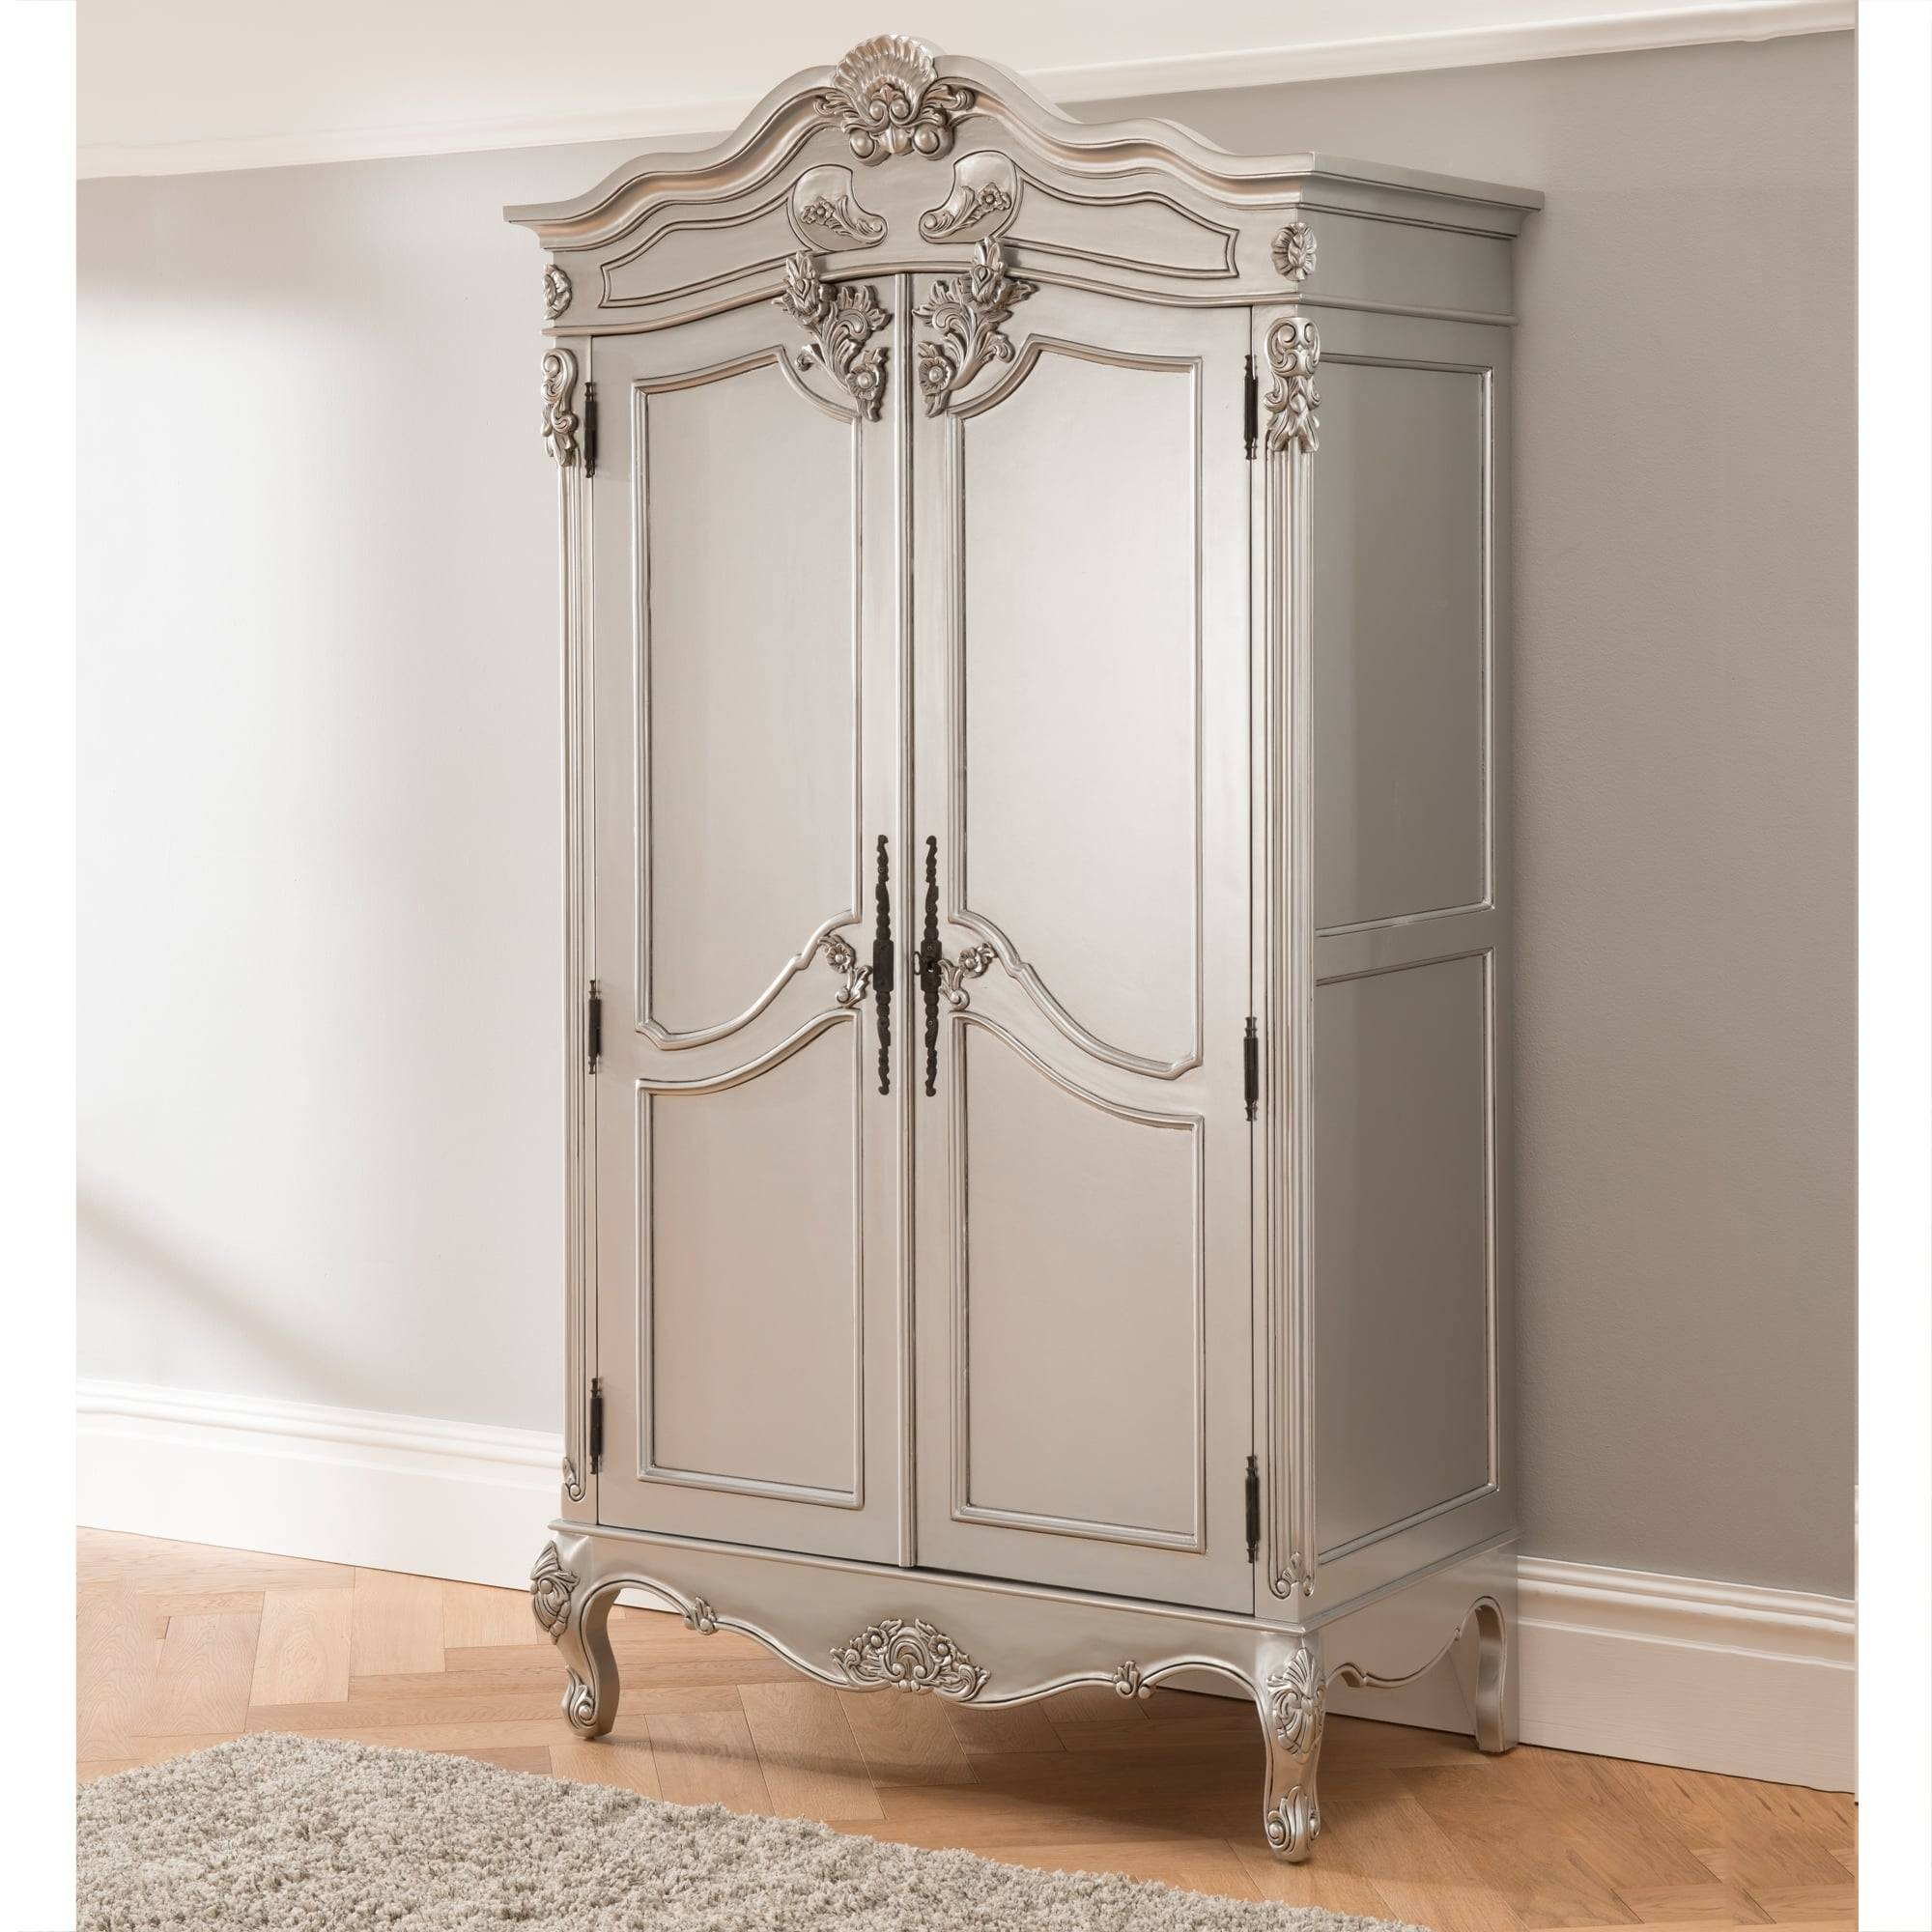 Baroque Antique French Wardrobe Works Exceptional Alongside Our in Shabby Chic Wardrobes (Image 1 of 15)